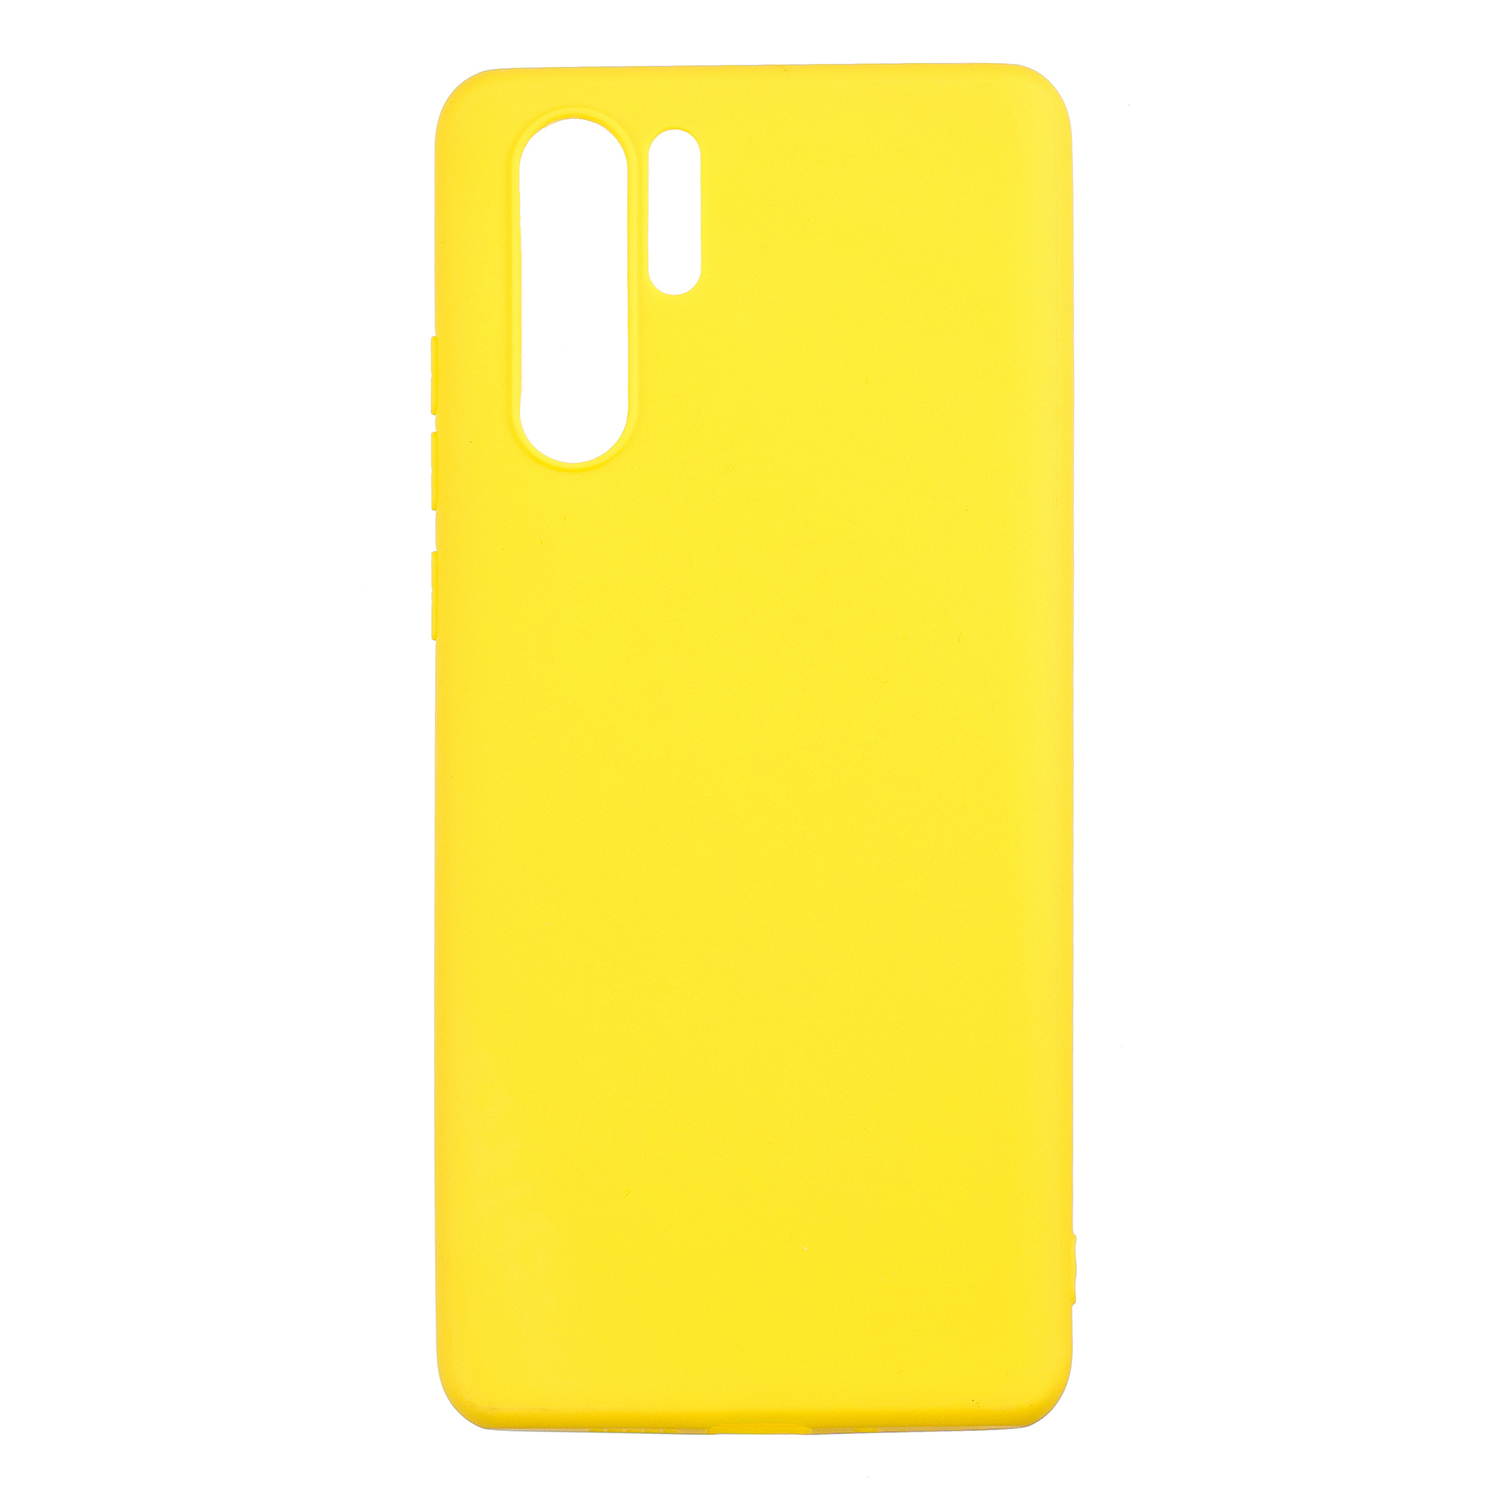 HUAWEI P30 pro Lovely Candy Color Matte TPU Anti-scratch Non-slip Protective Cover Back Case yellow